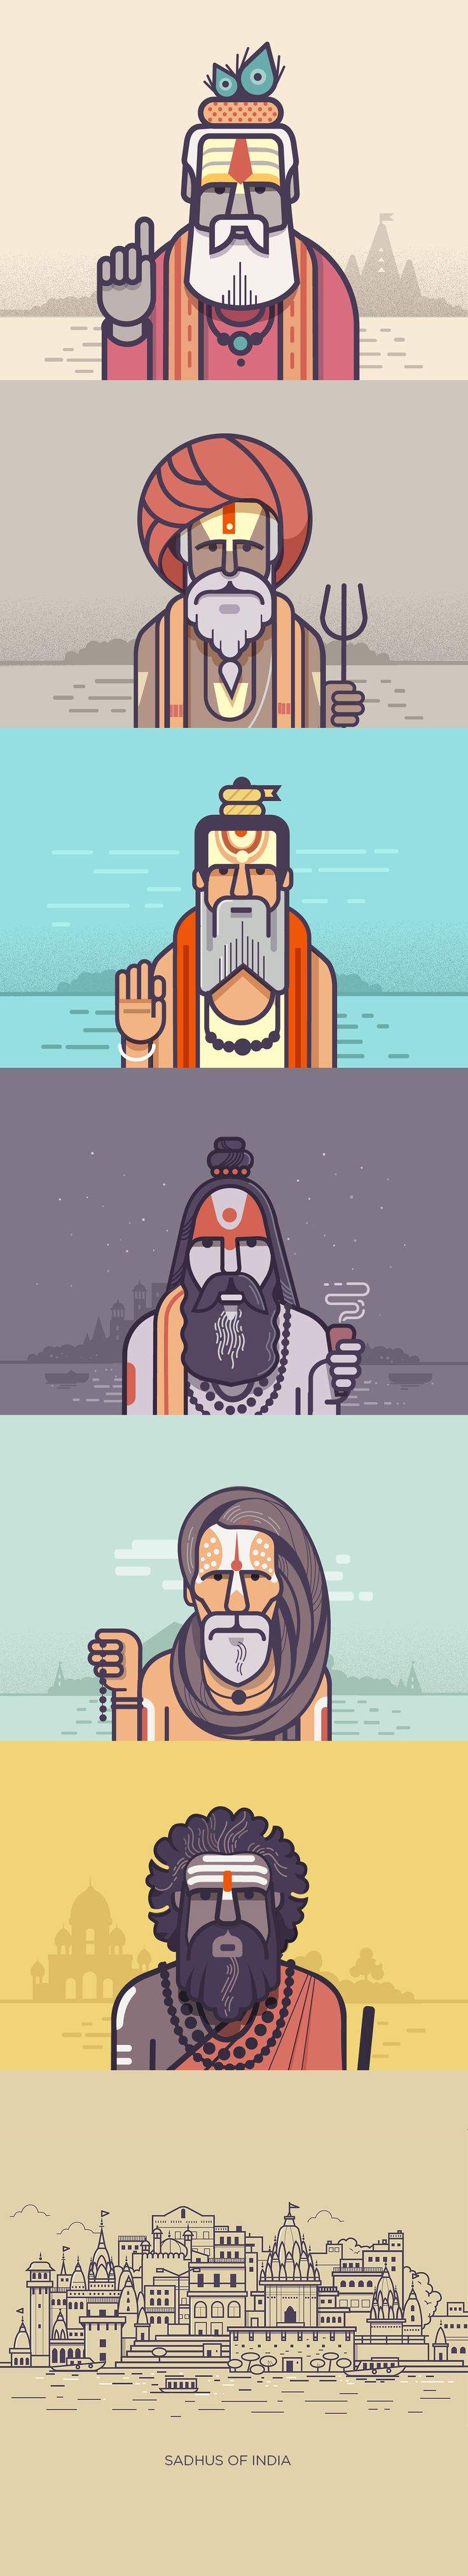 Sadhus of India on Behance